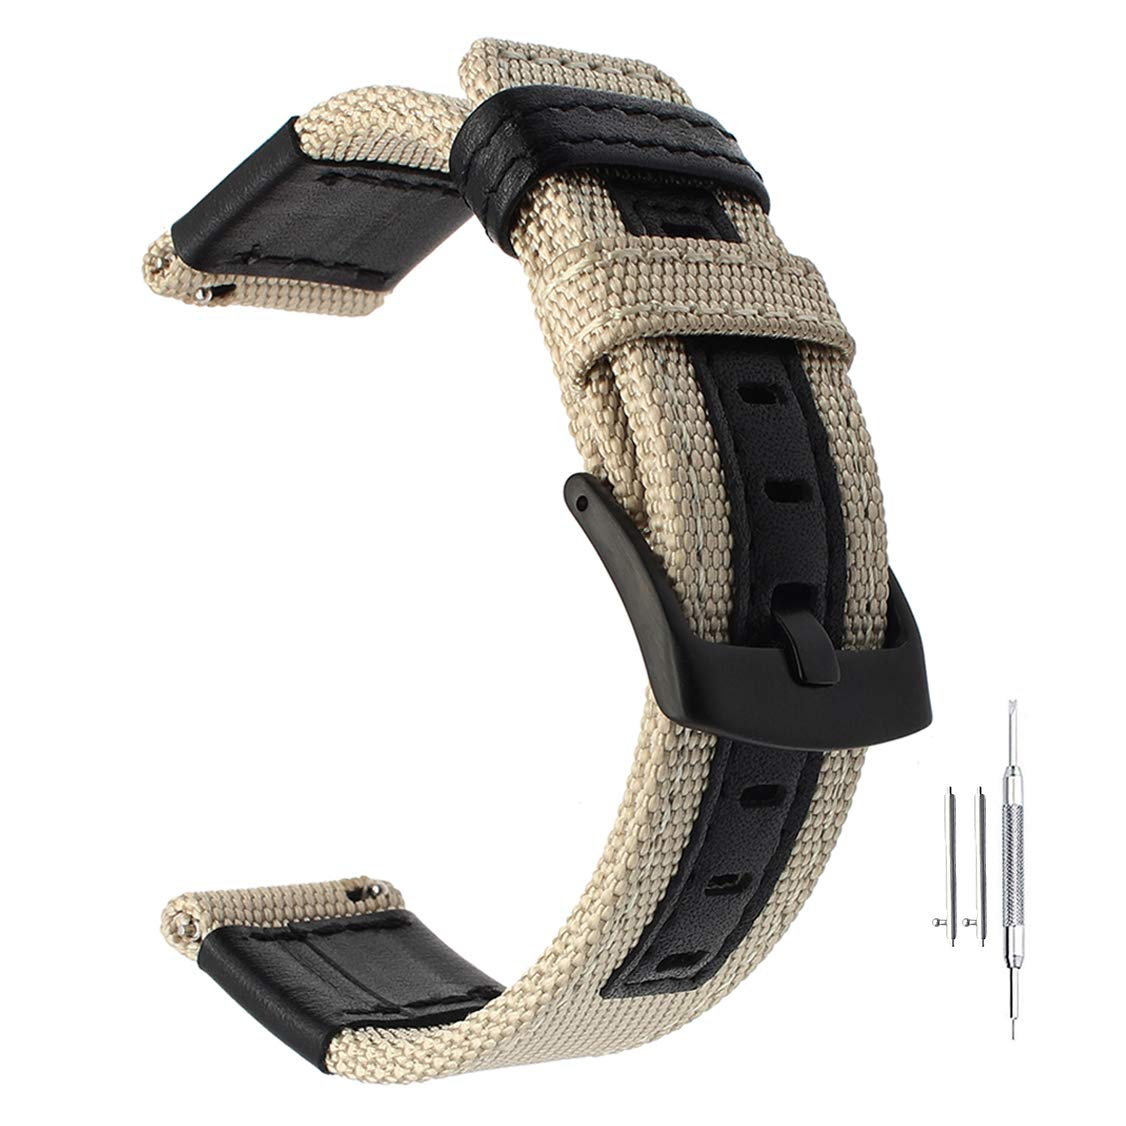 24mm Genuine Nylon & Leather Watchband Quick Release for Suunto Traverse and Any Watches with 24mm Lug Smartwatch